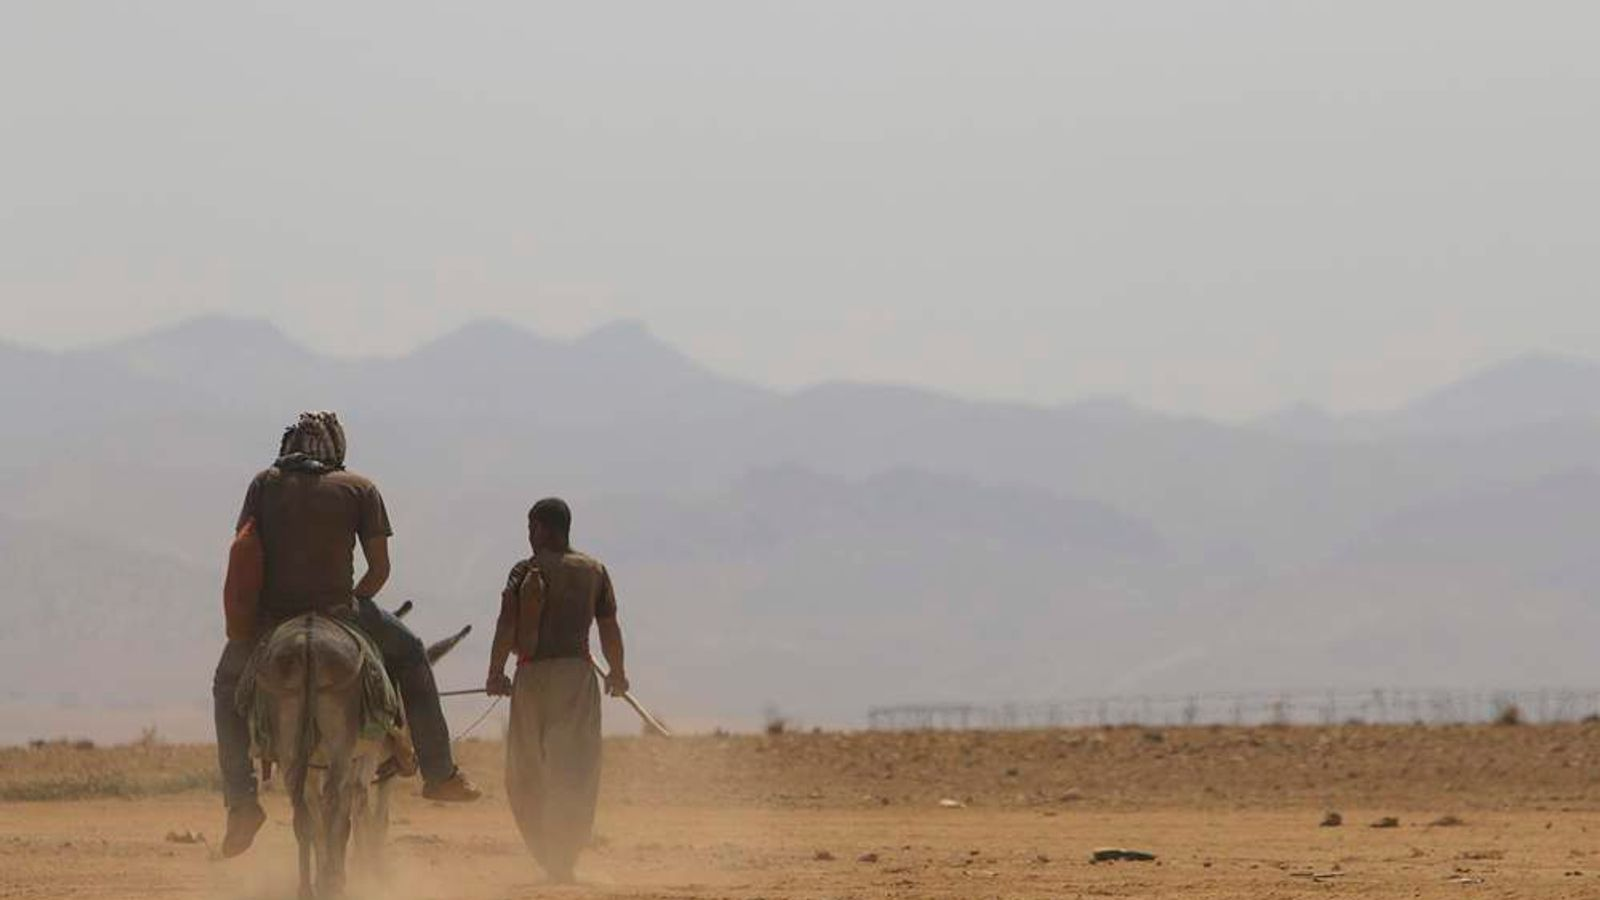 Two Yazidis head towards the Mount Sinjar